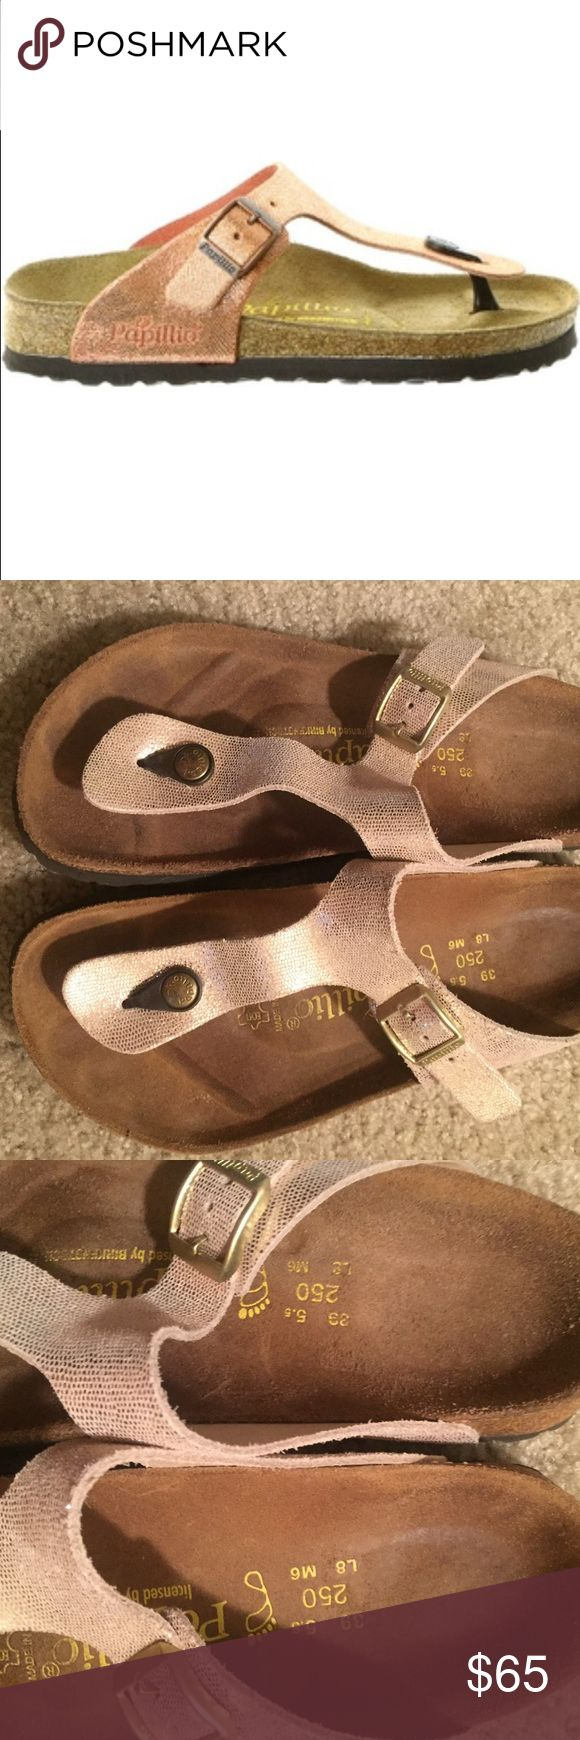 Birkenstock Papillio Gizeh size 39 Worn several times. Gold hardware. Metallic shine. See pics for normal wear Birkenstock Shoes Sandals